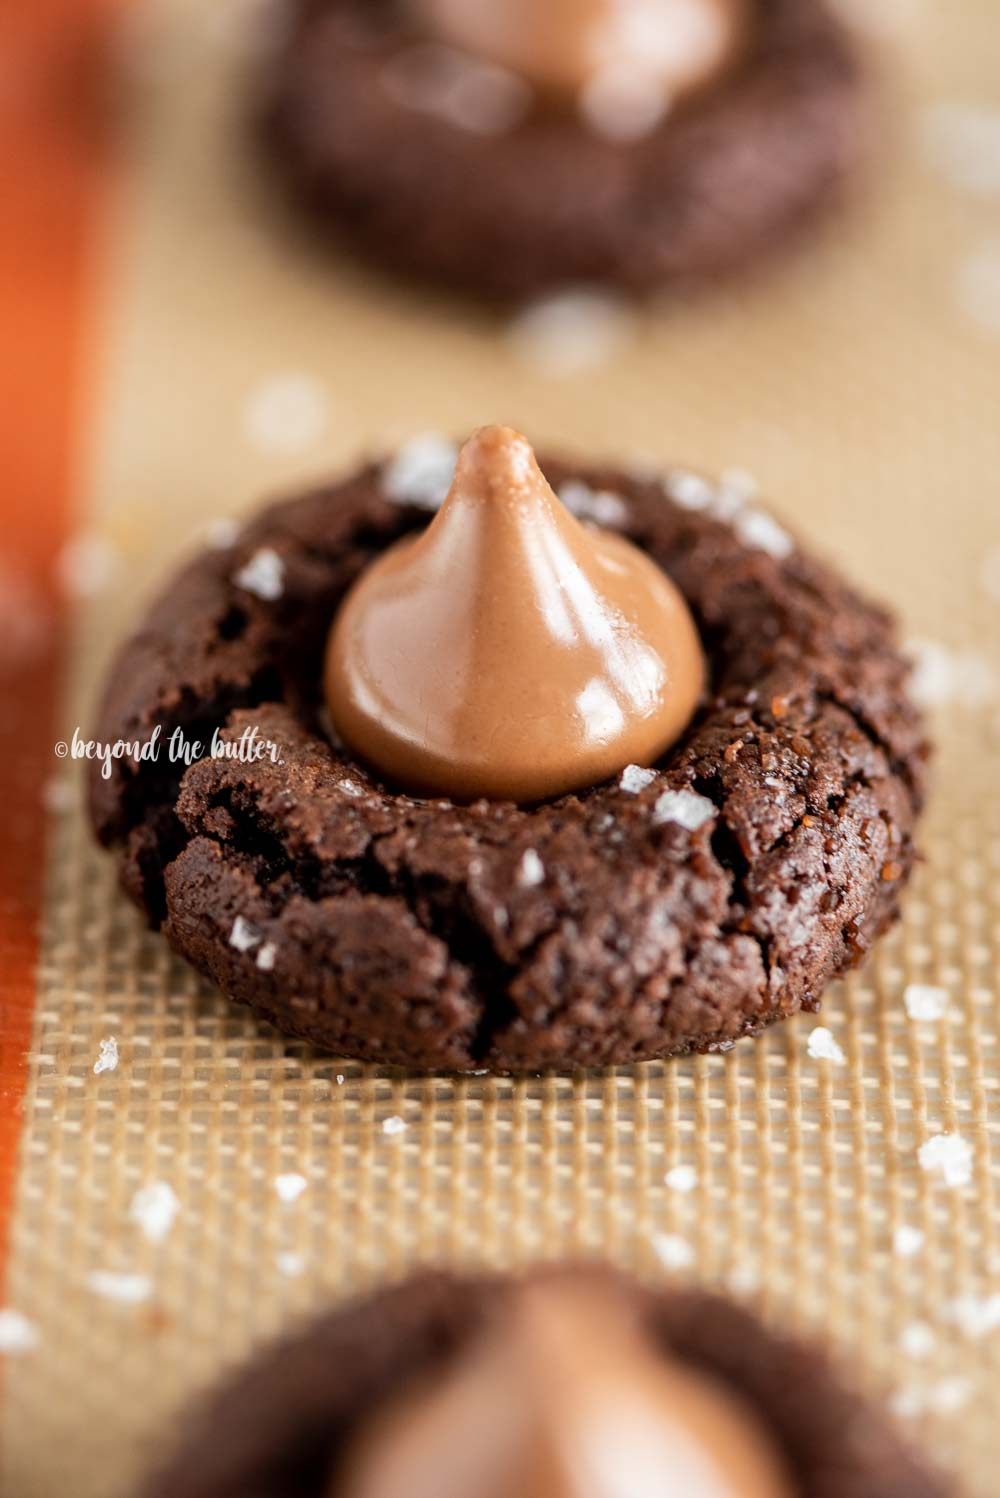 Angled image of Chocolate Caramel Blossoms on cookie sheet | All Images © Beyond the Butter, LLC